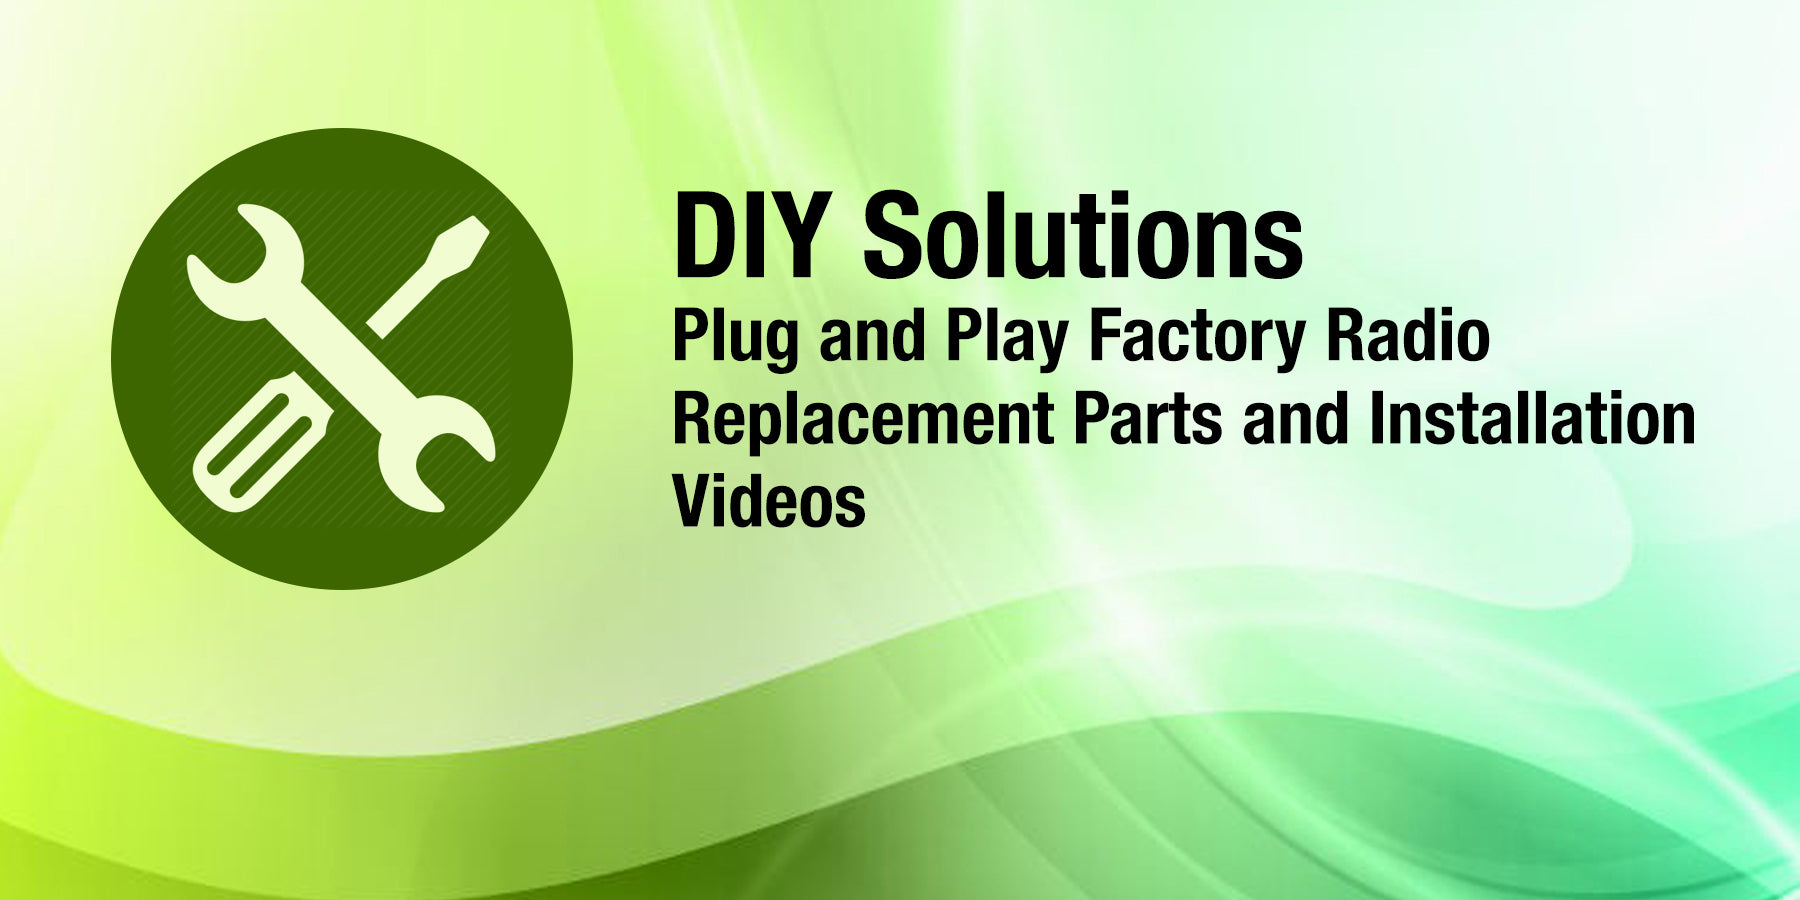 Factory Radio Parts | Replacement Factory Radio Parts and